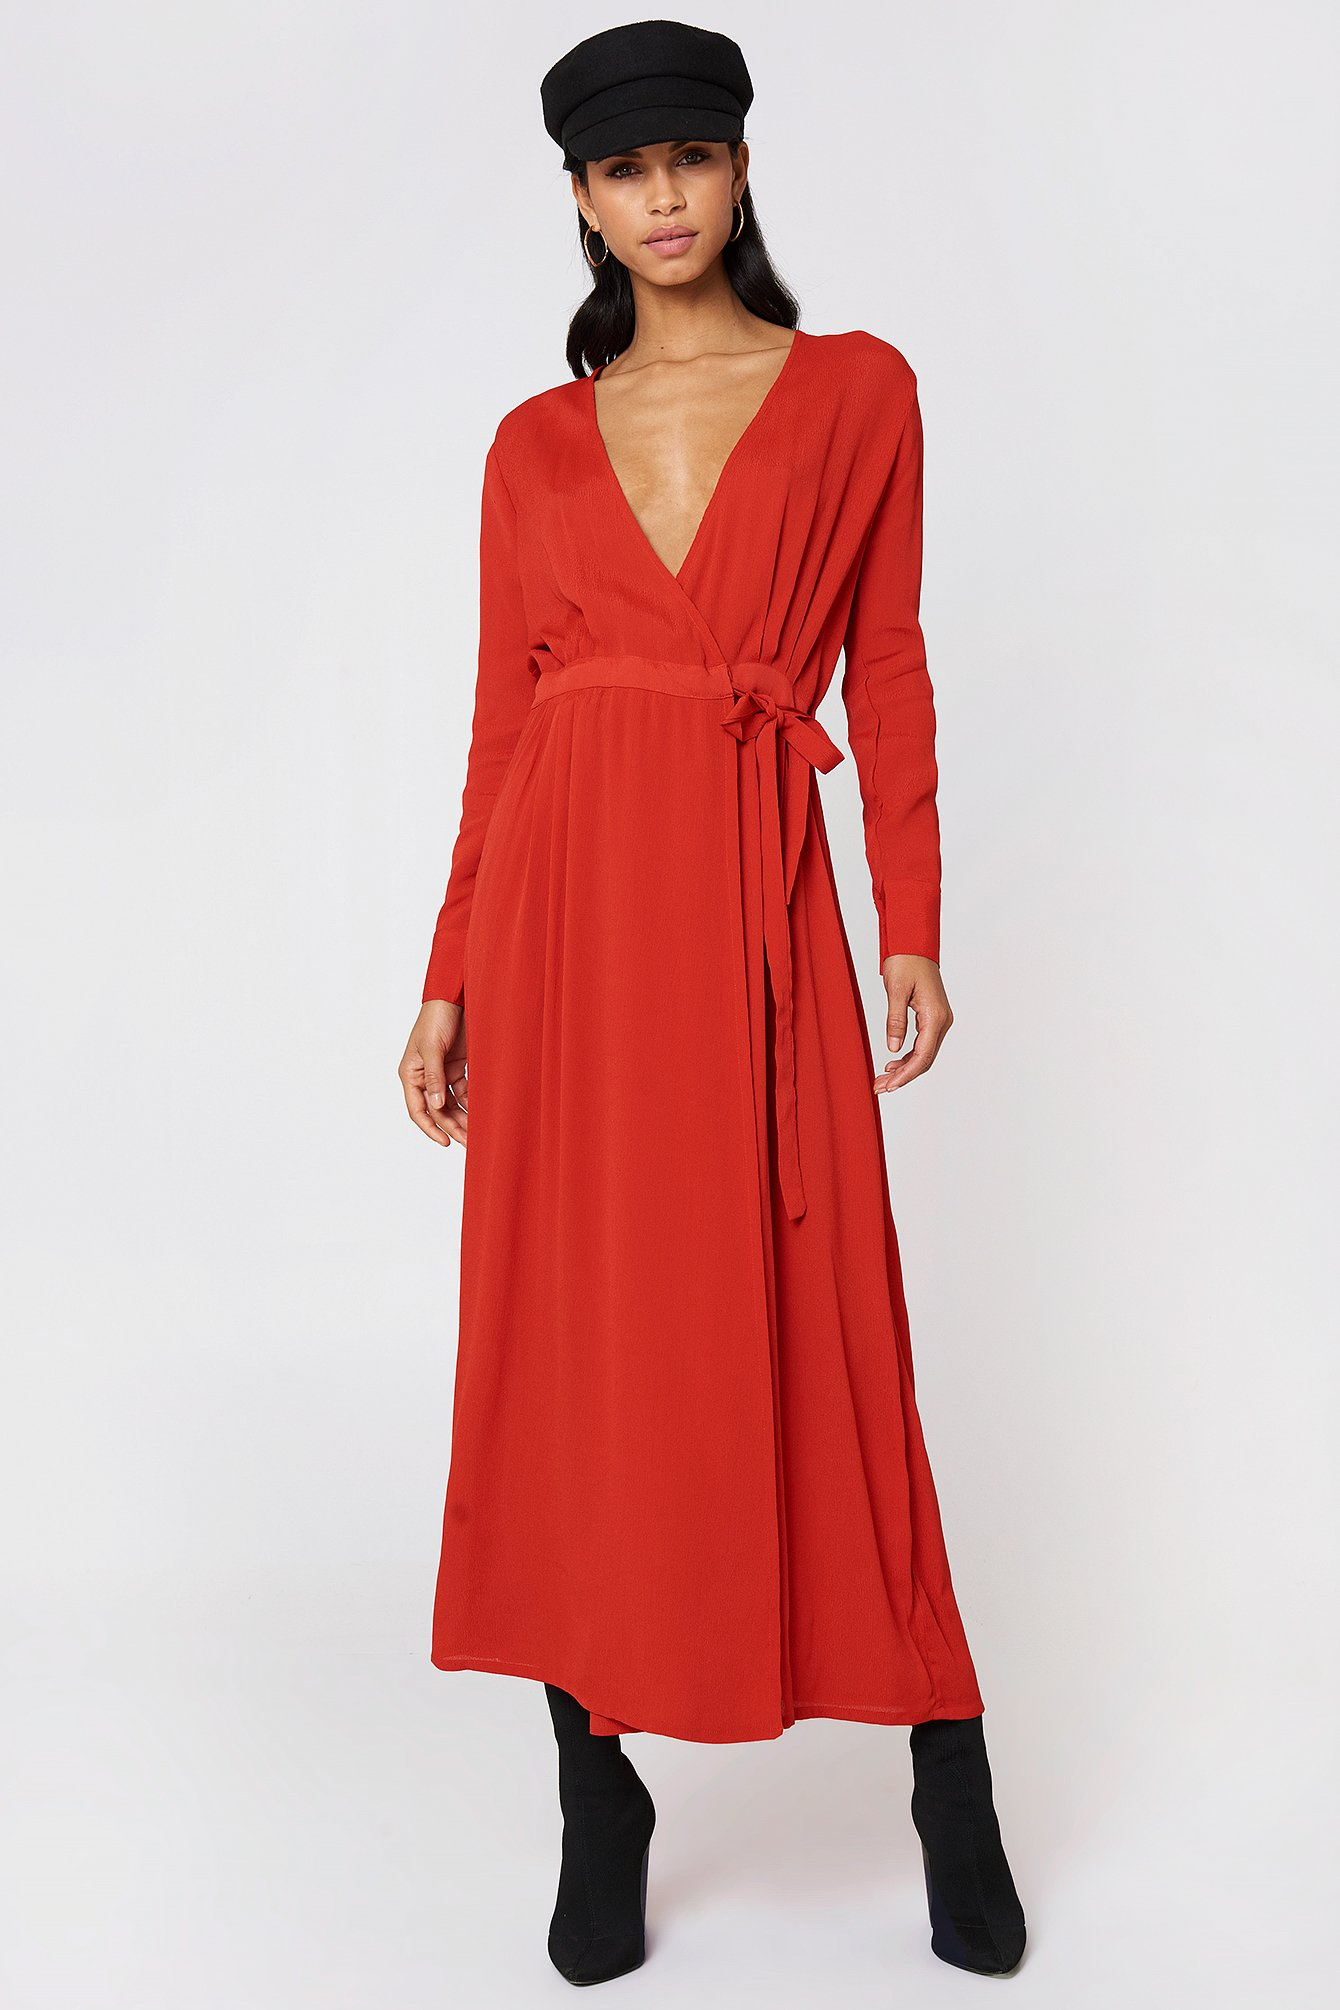 ANKLE LS DRESS - RED